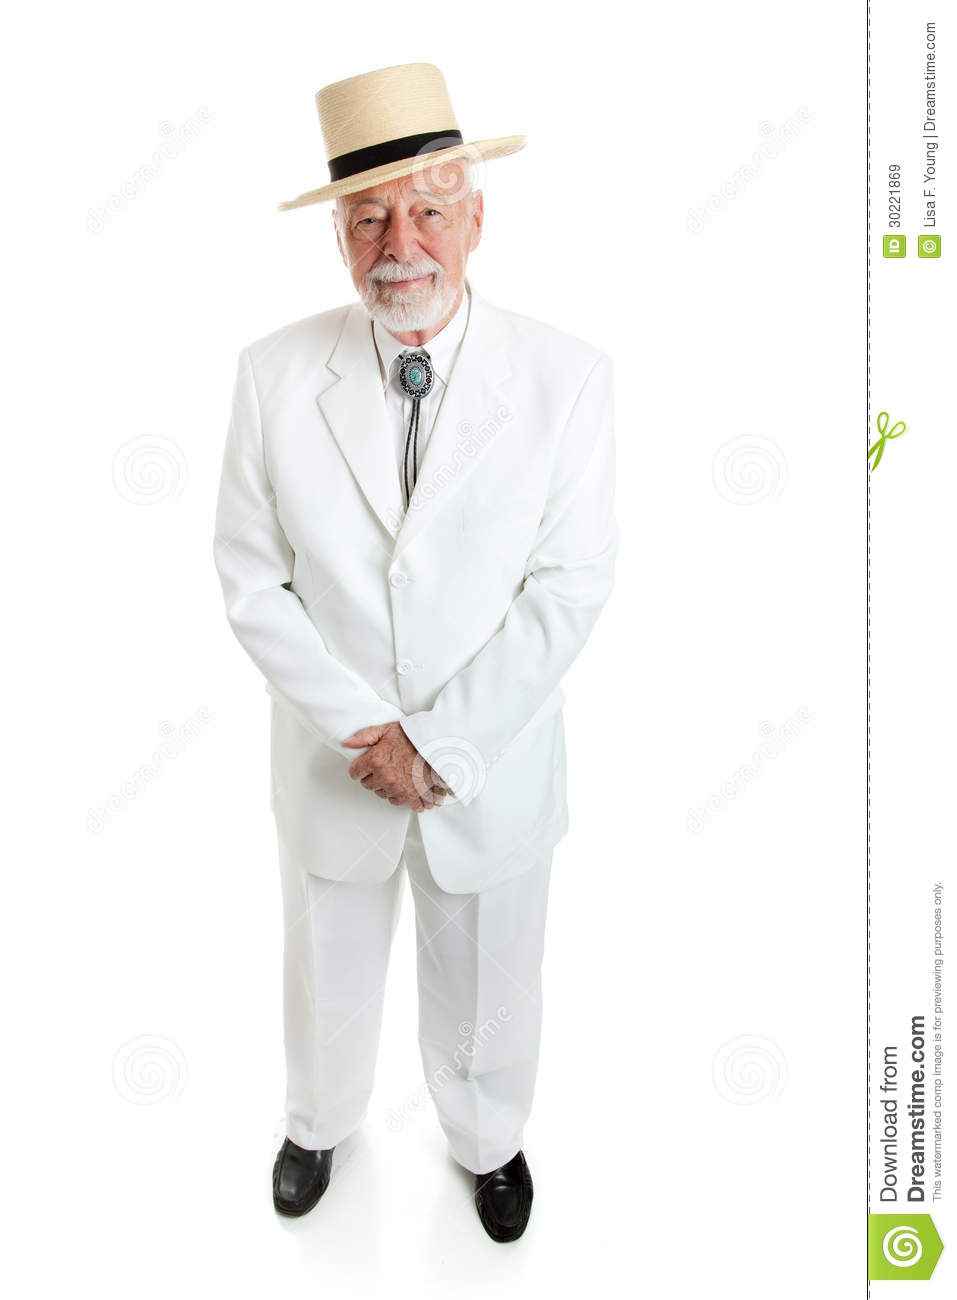 Handsome Southern Gentleman Royalty Free Stock Images.